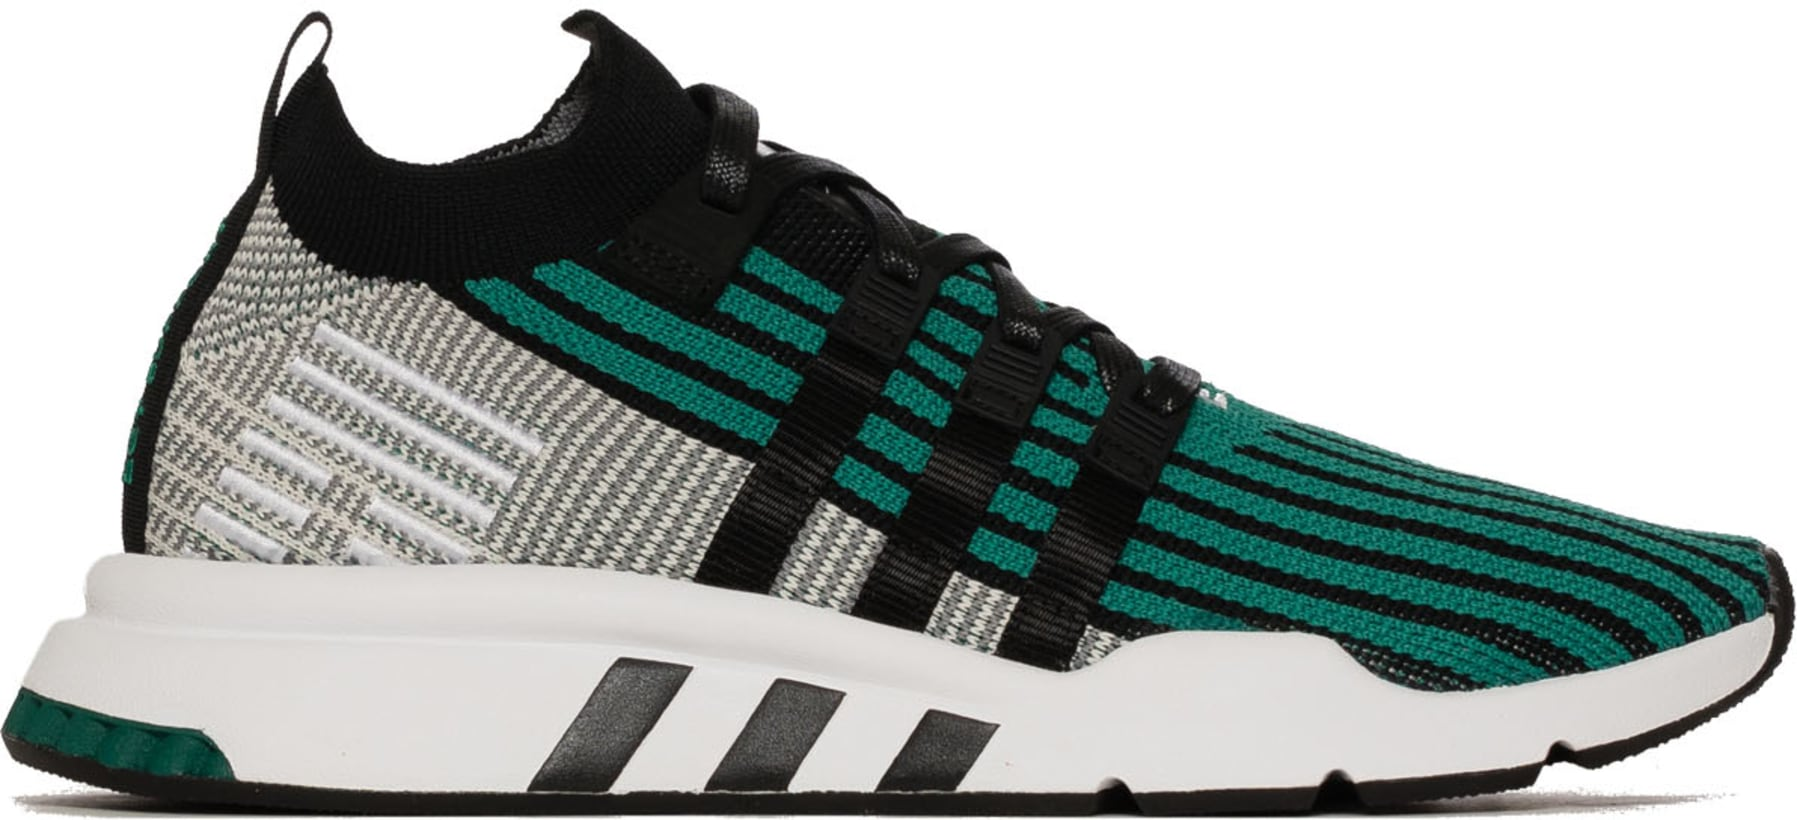 brand new d1d46 bcf25 adidas Originals. EQT Support Mid Adv Primeknit - Core BlackCore BlackSub  Green